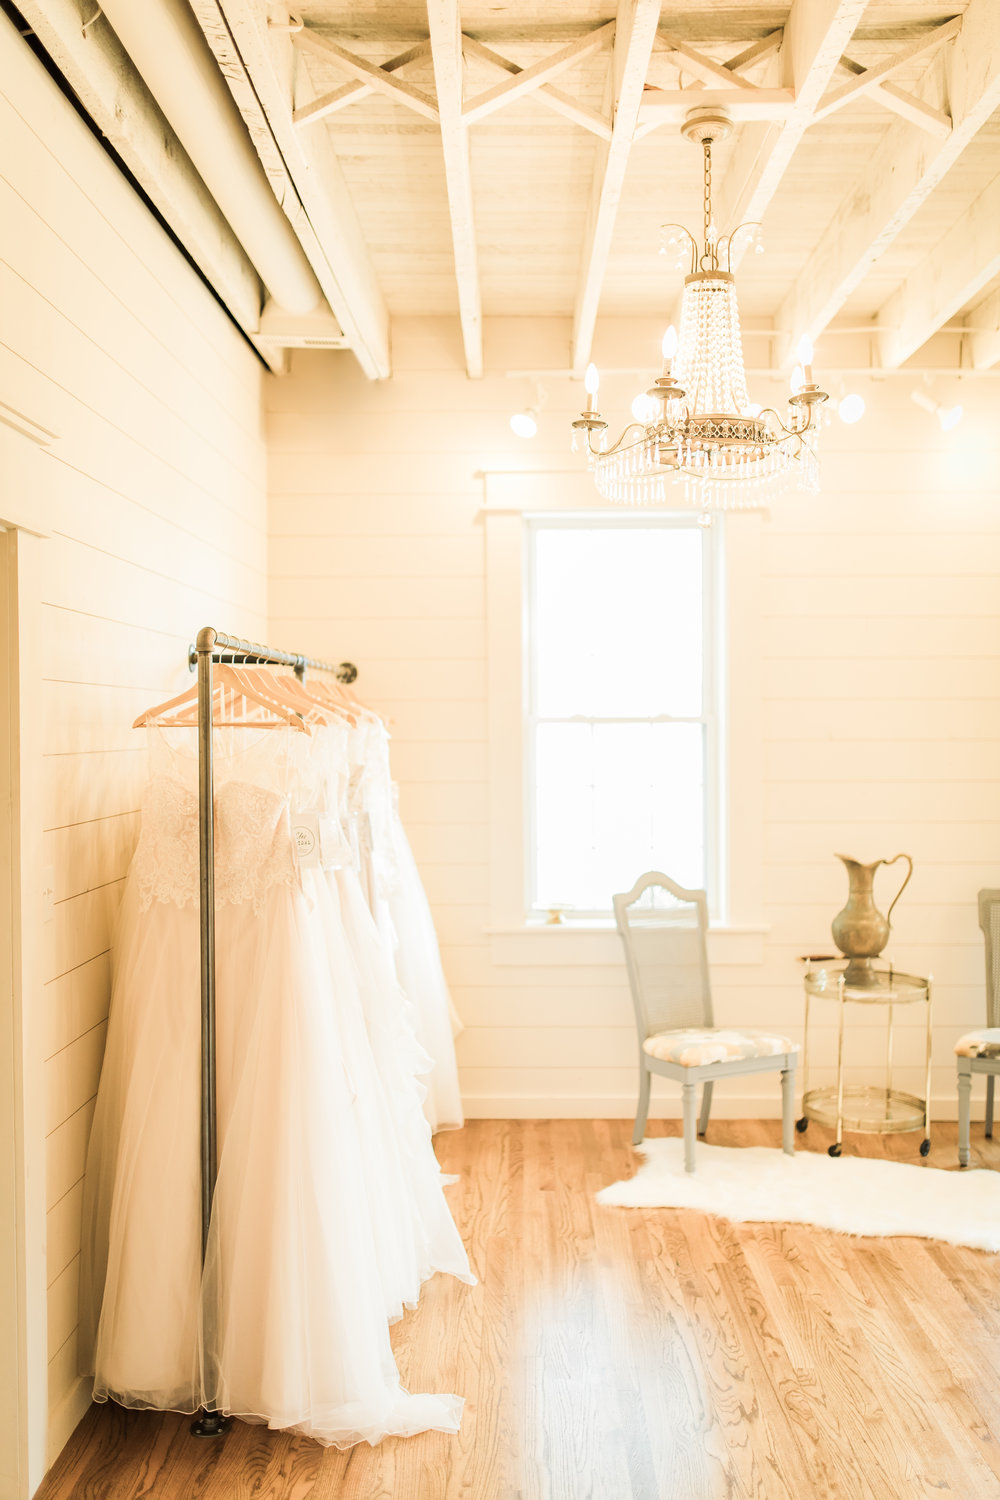 Cleo Bridal   White Traditions Sister-Store  O'Fallon, MO  Bridal Shop  Allison Slater Photography51.jpg